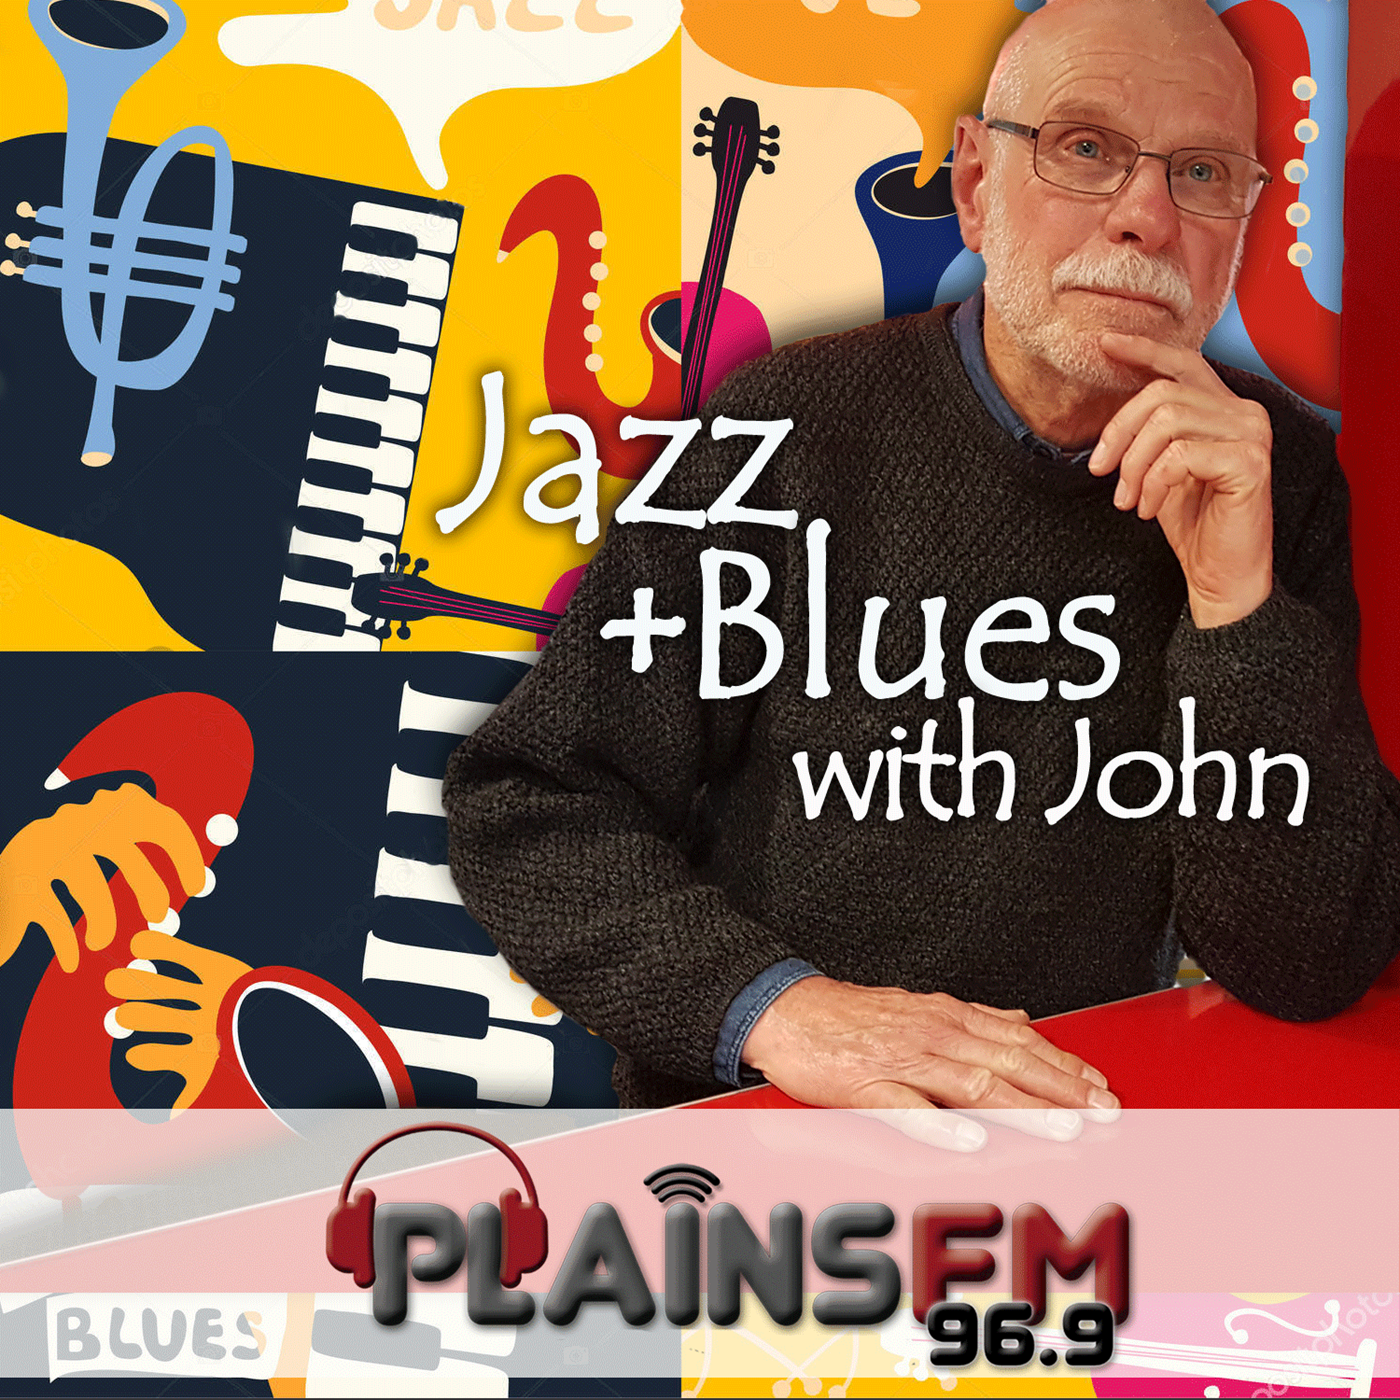 Jazz and Blues with John